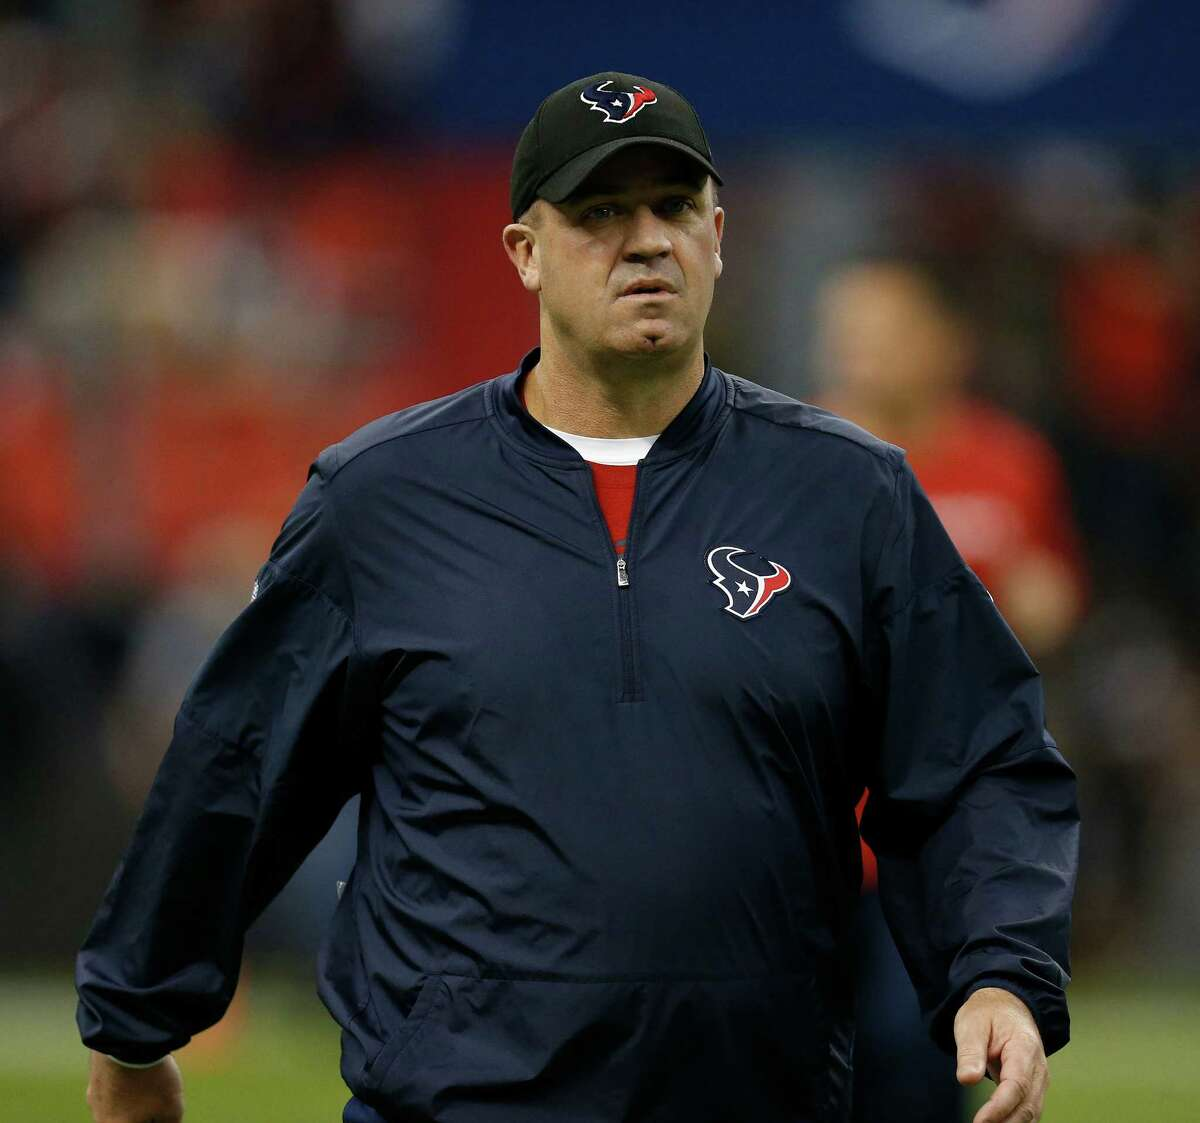 Houston Texans head coach Bill O'Brien before the start of an NFL football game at Estadio Azteca on Monday, Nov. 21, 2016, in Mexico City.